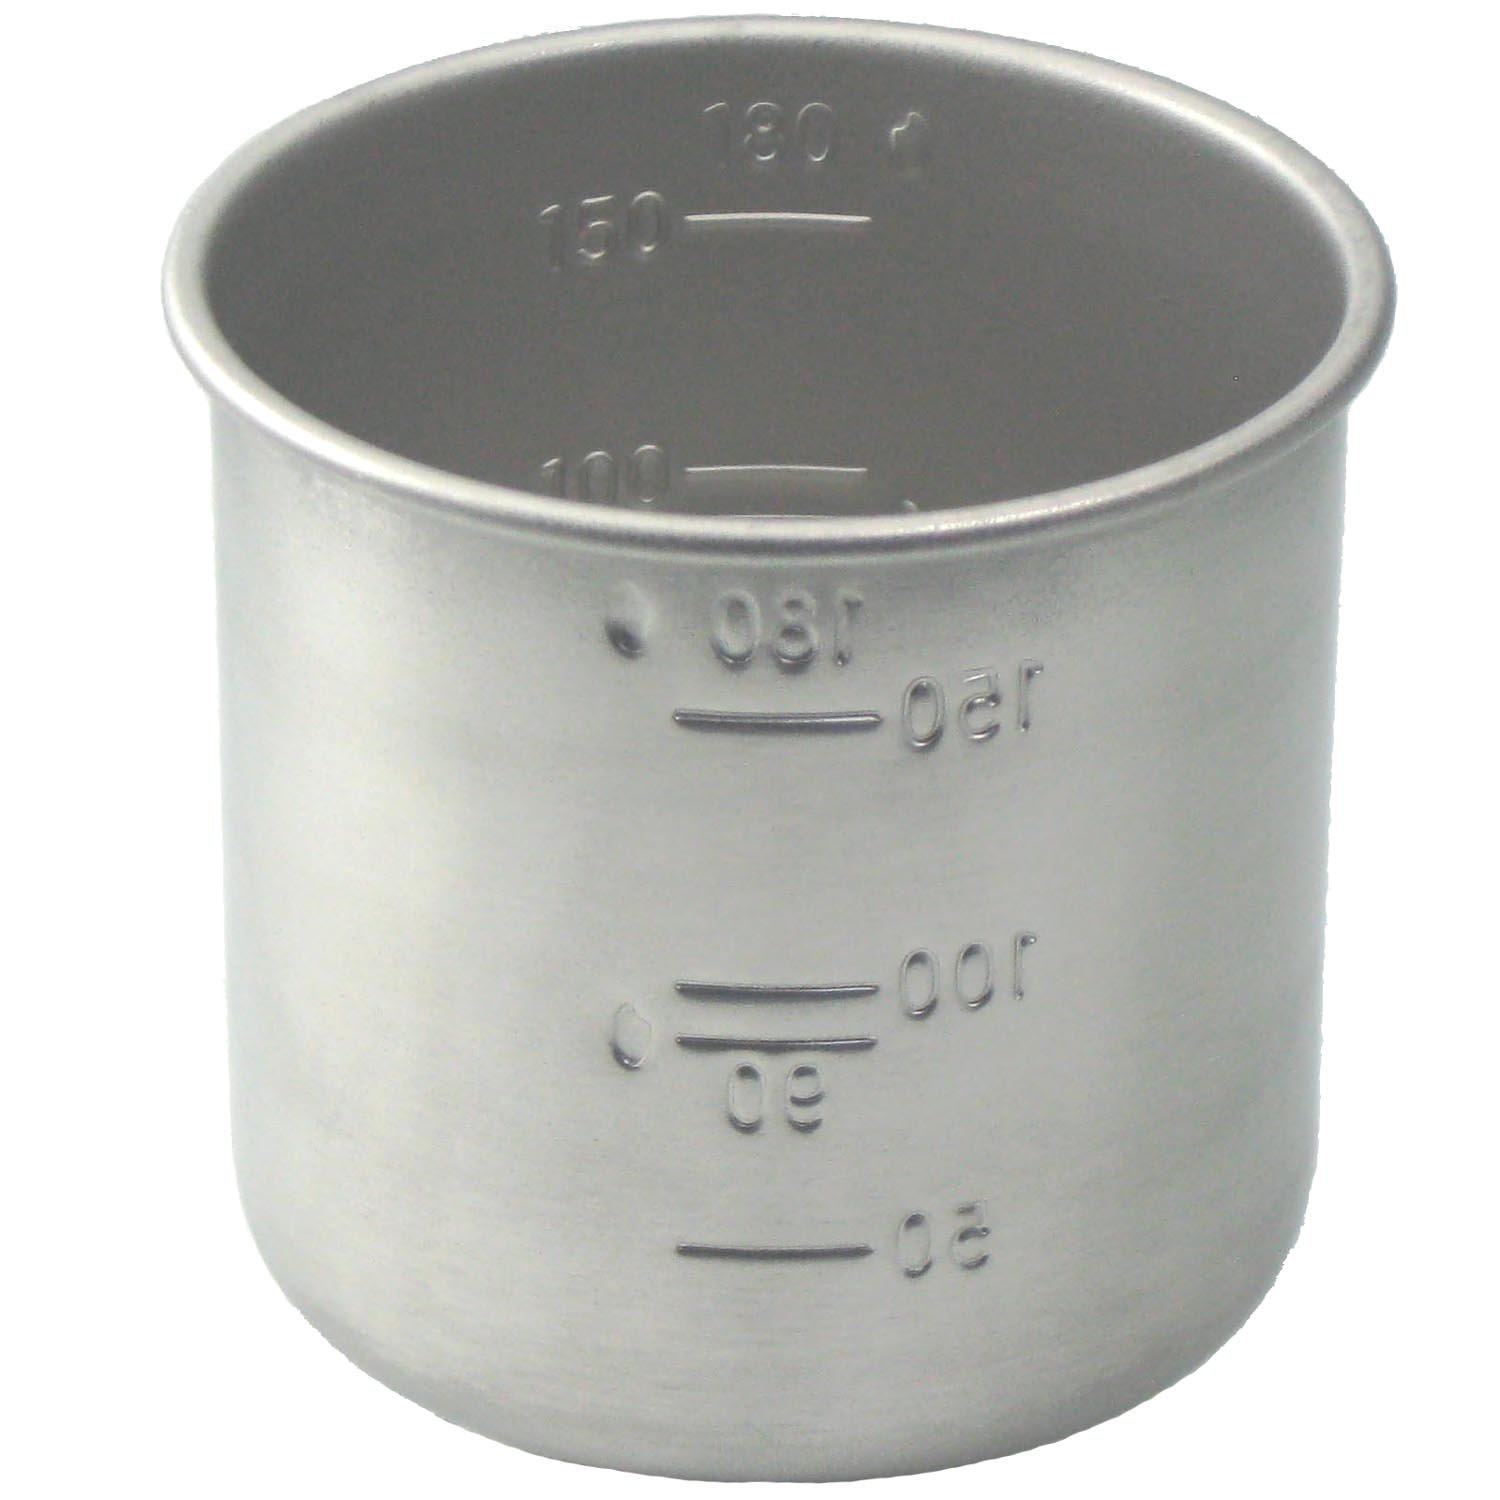 Endoshoji Idea cough River for 18-8 stainless rice measuring cup 1 Go by